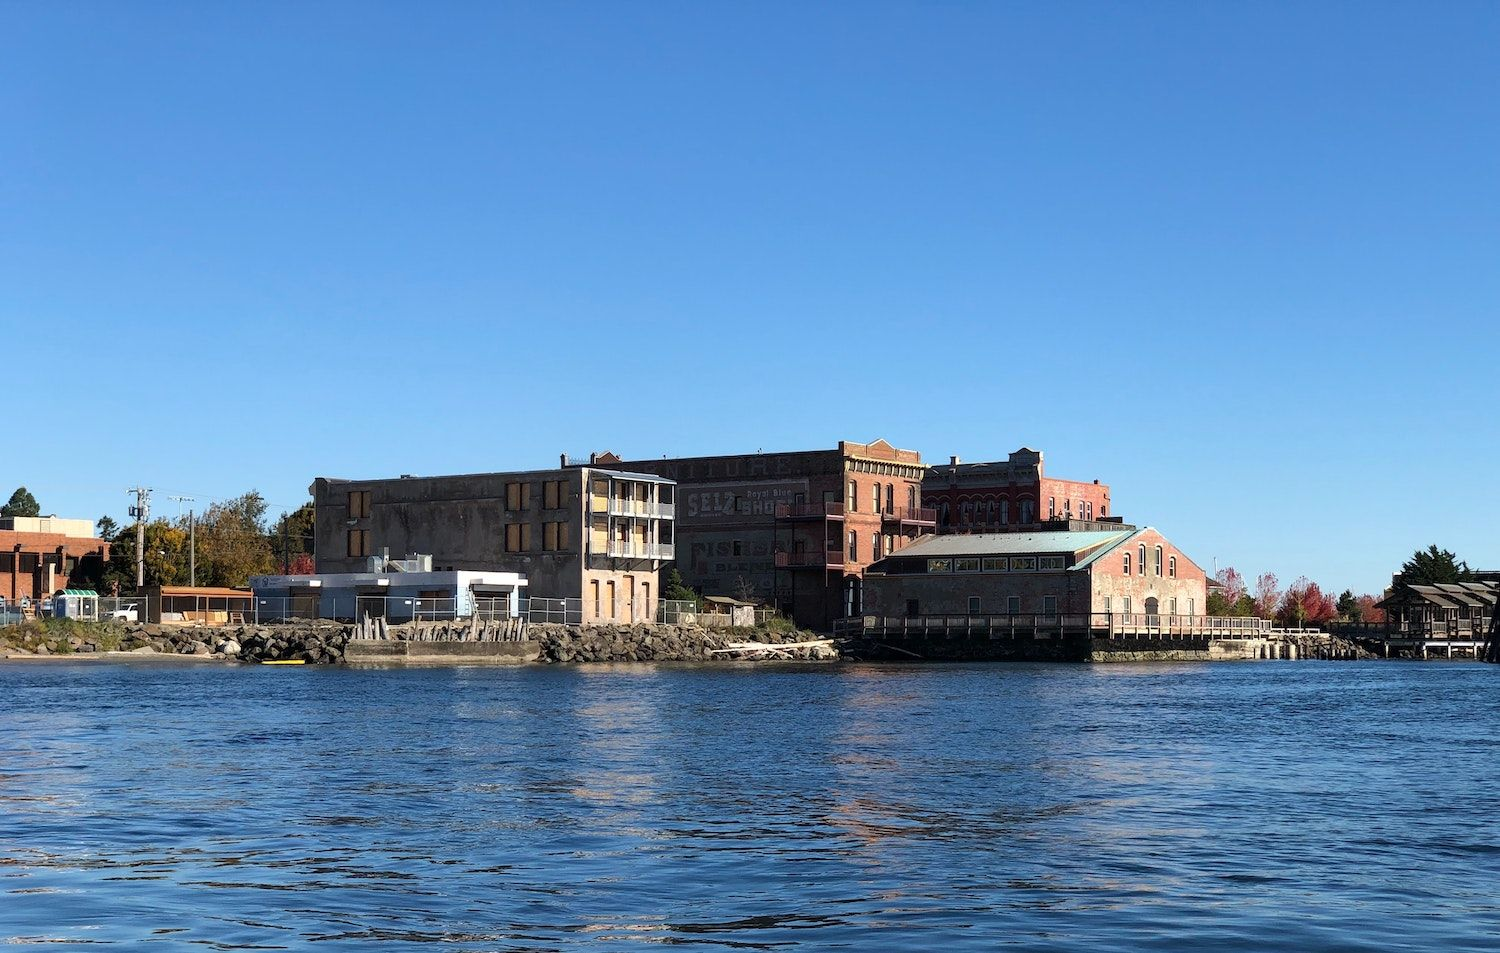 20 Best Things to Do in Port Townsend, Washington